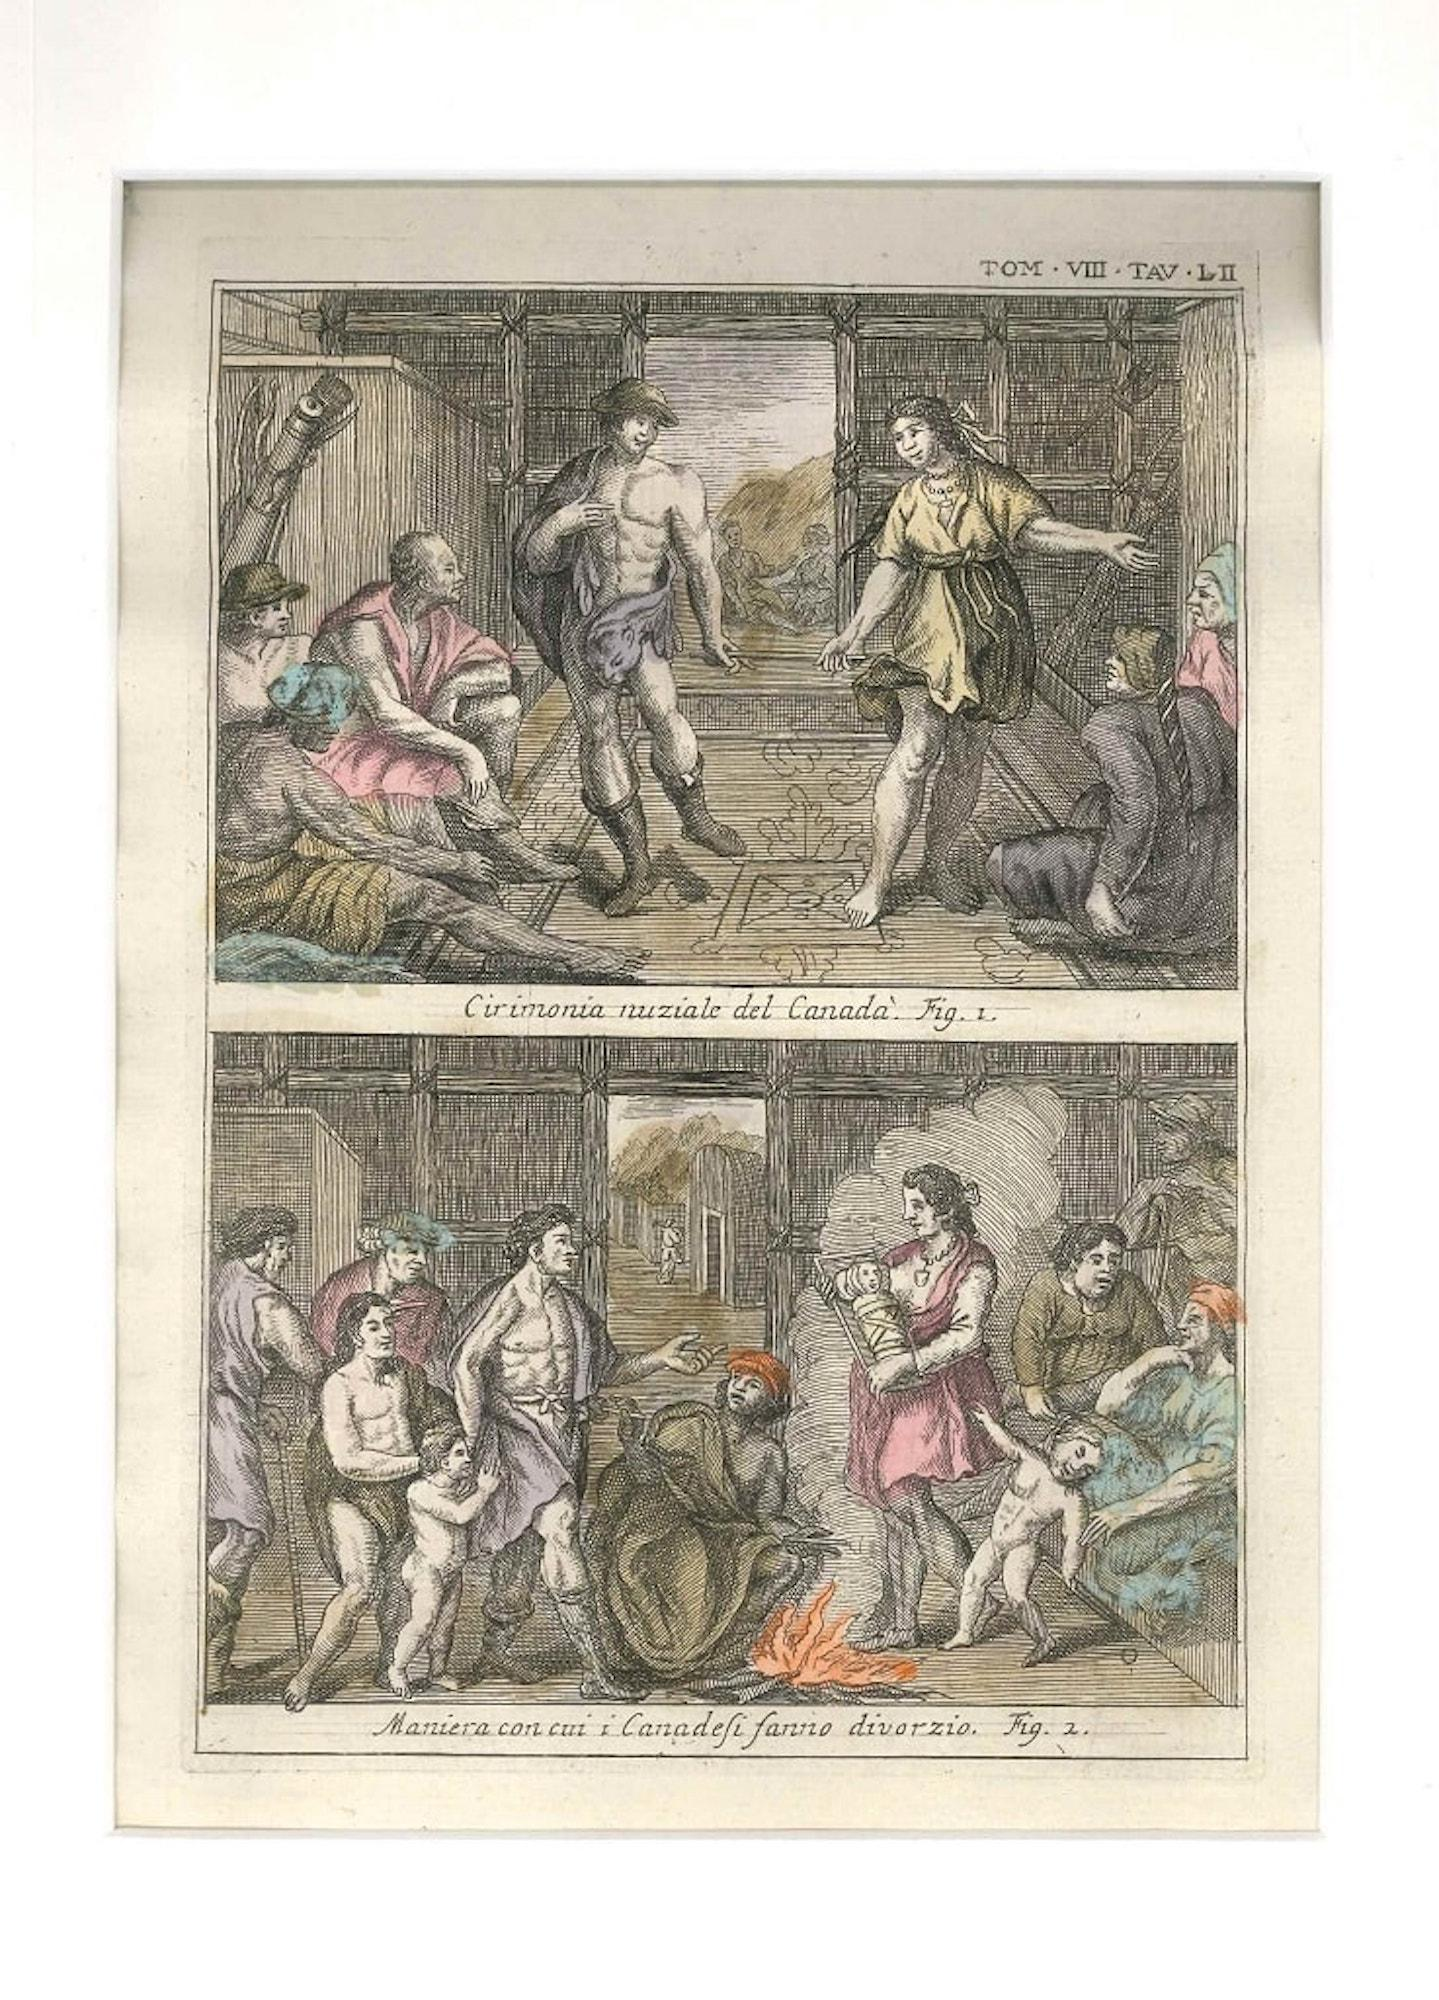 Wedding and Divorce among the Canadians - by G. Pivati - 1746-1751